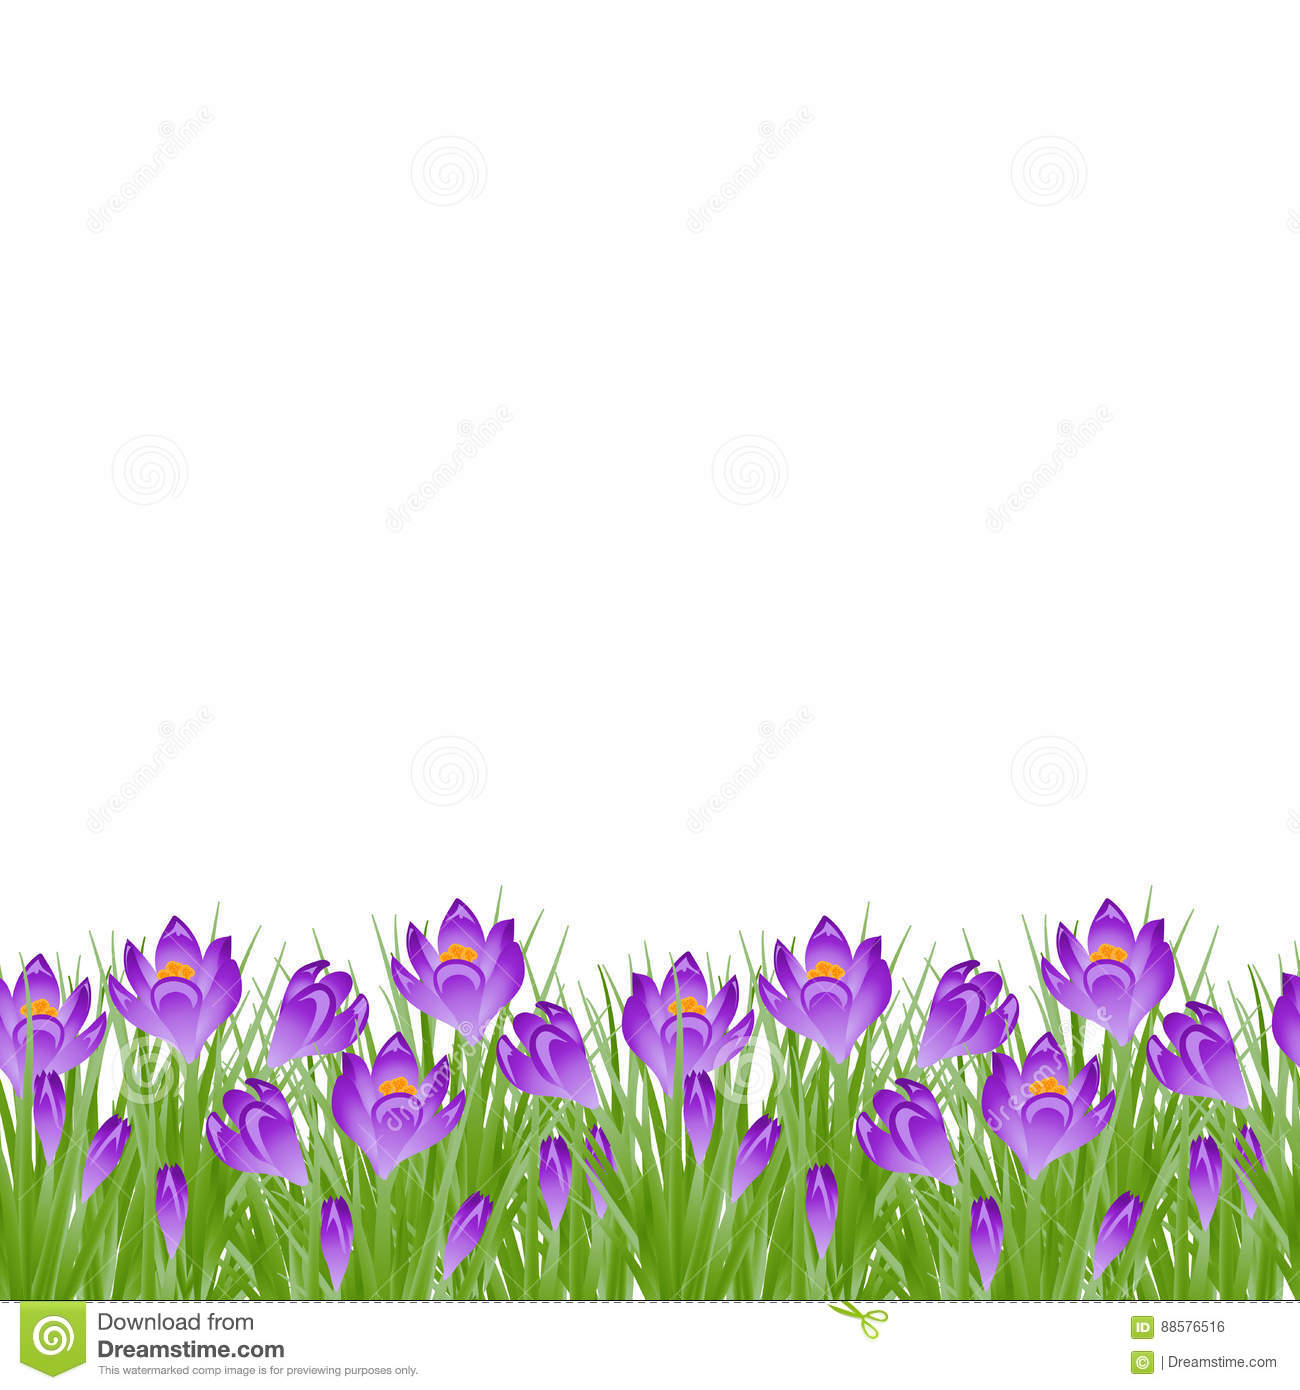 Early Spring Small Purple Flower Crocus For Easter On White